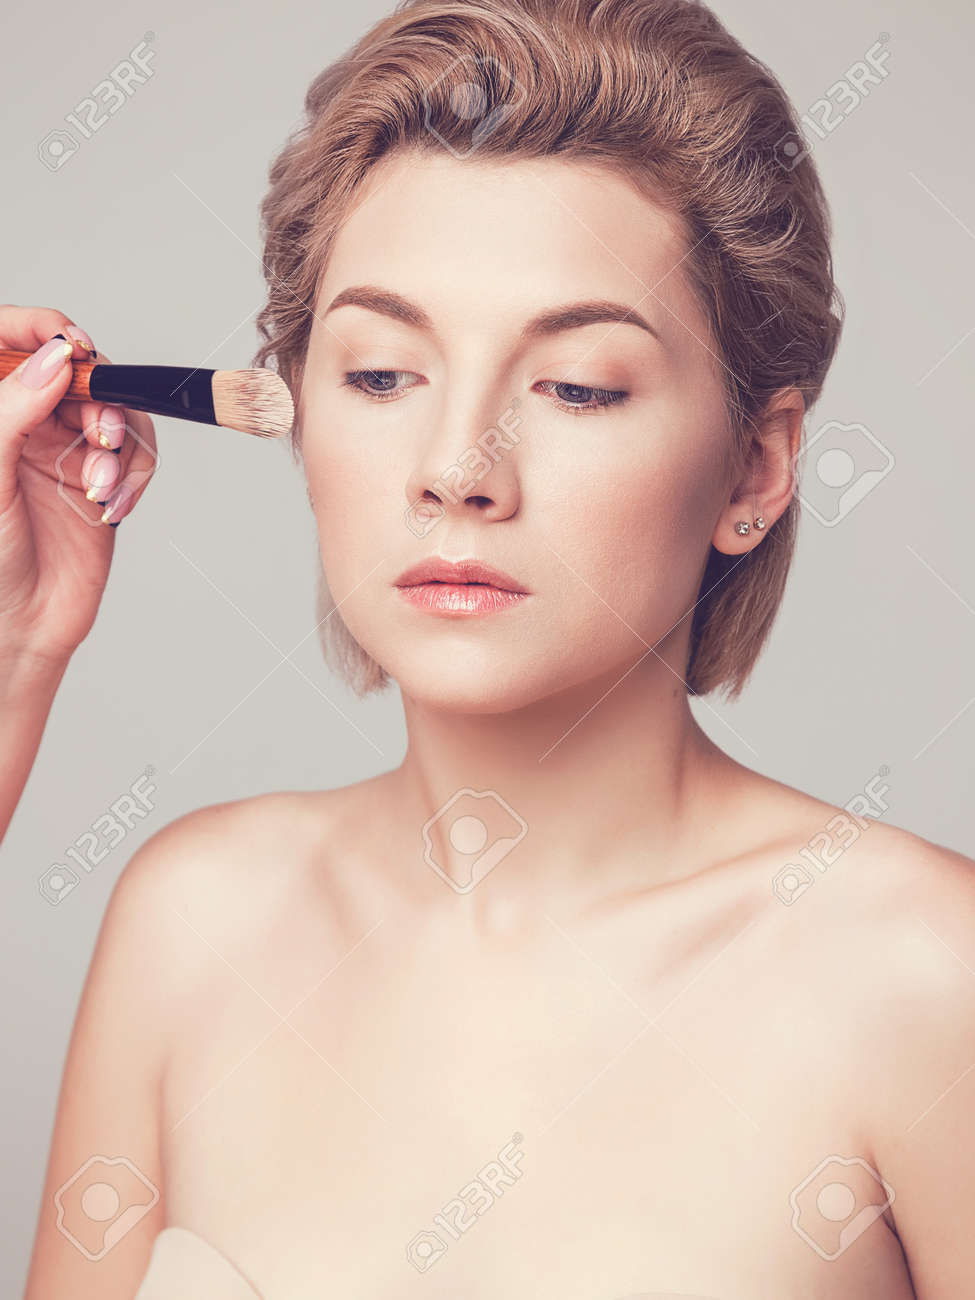 Applying Foundation On A Woman S Face Makeup Artist Training Stock Photo Picture And Royalty Free Image Image 149563588